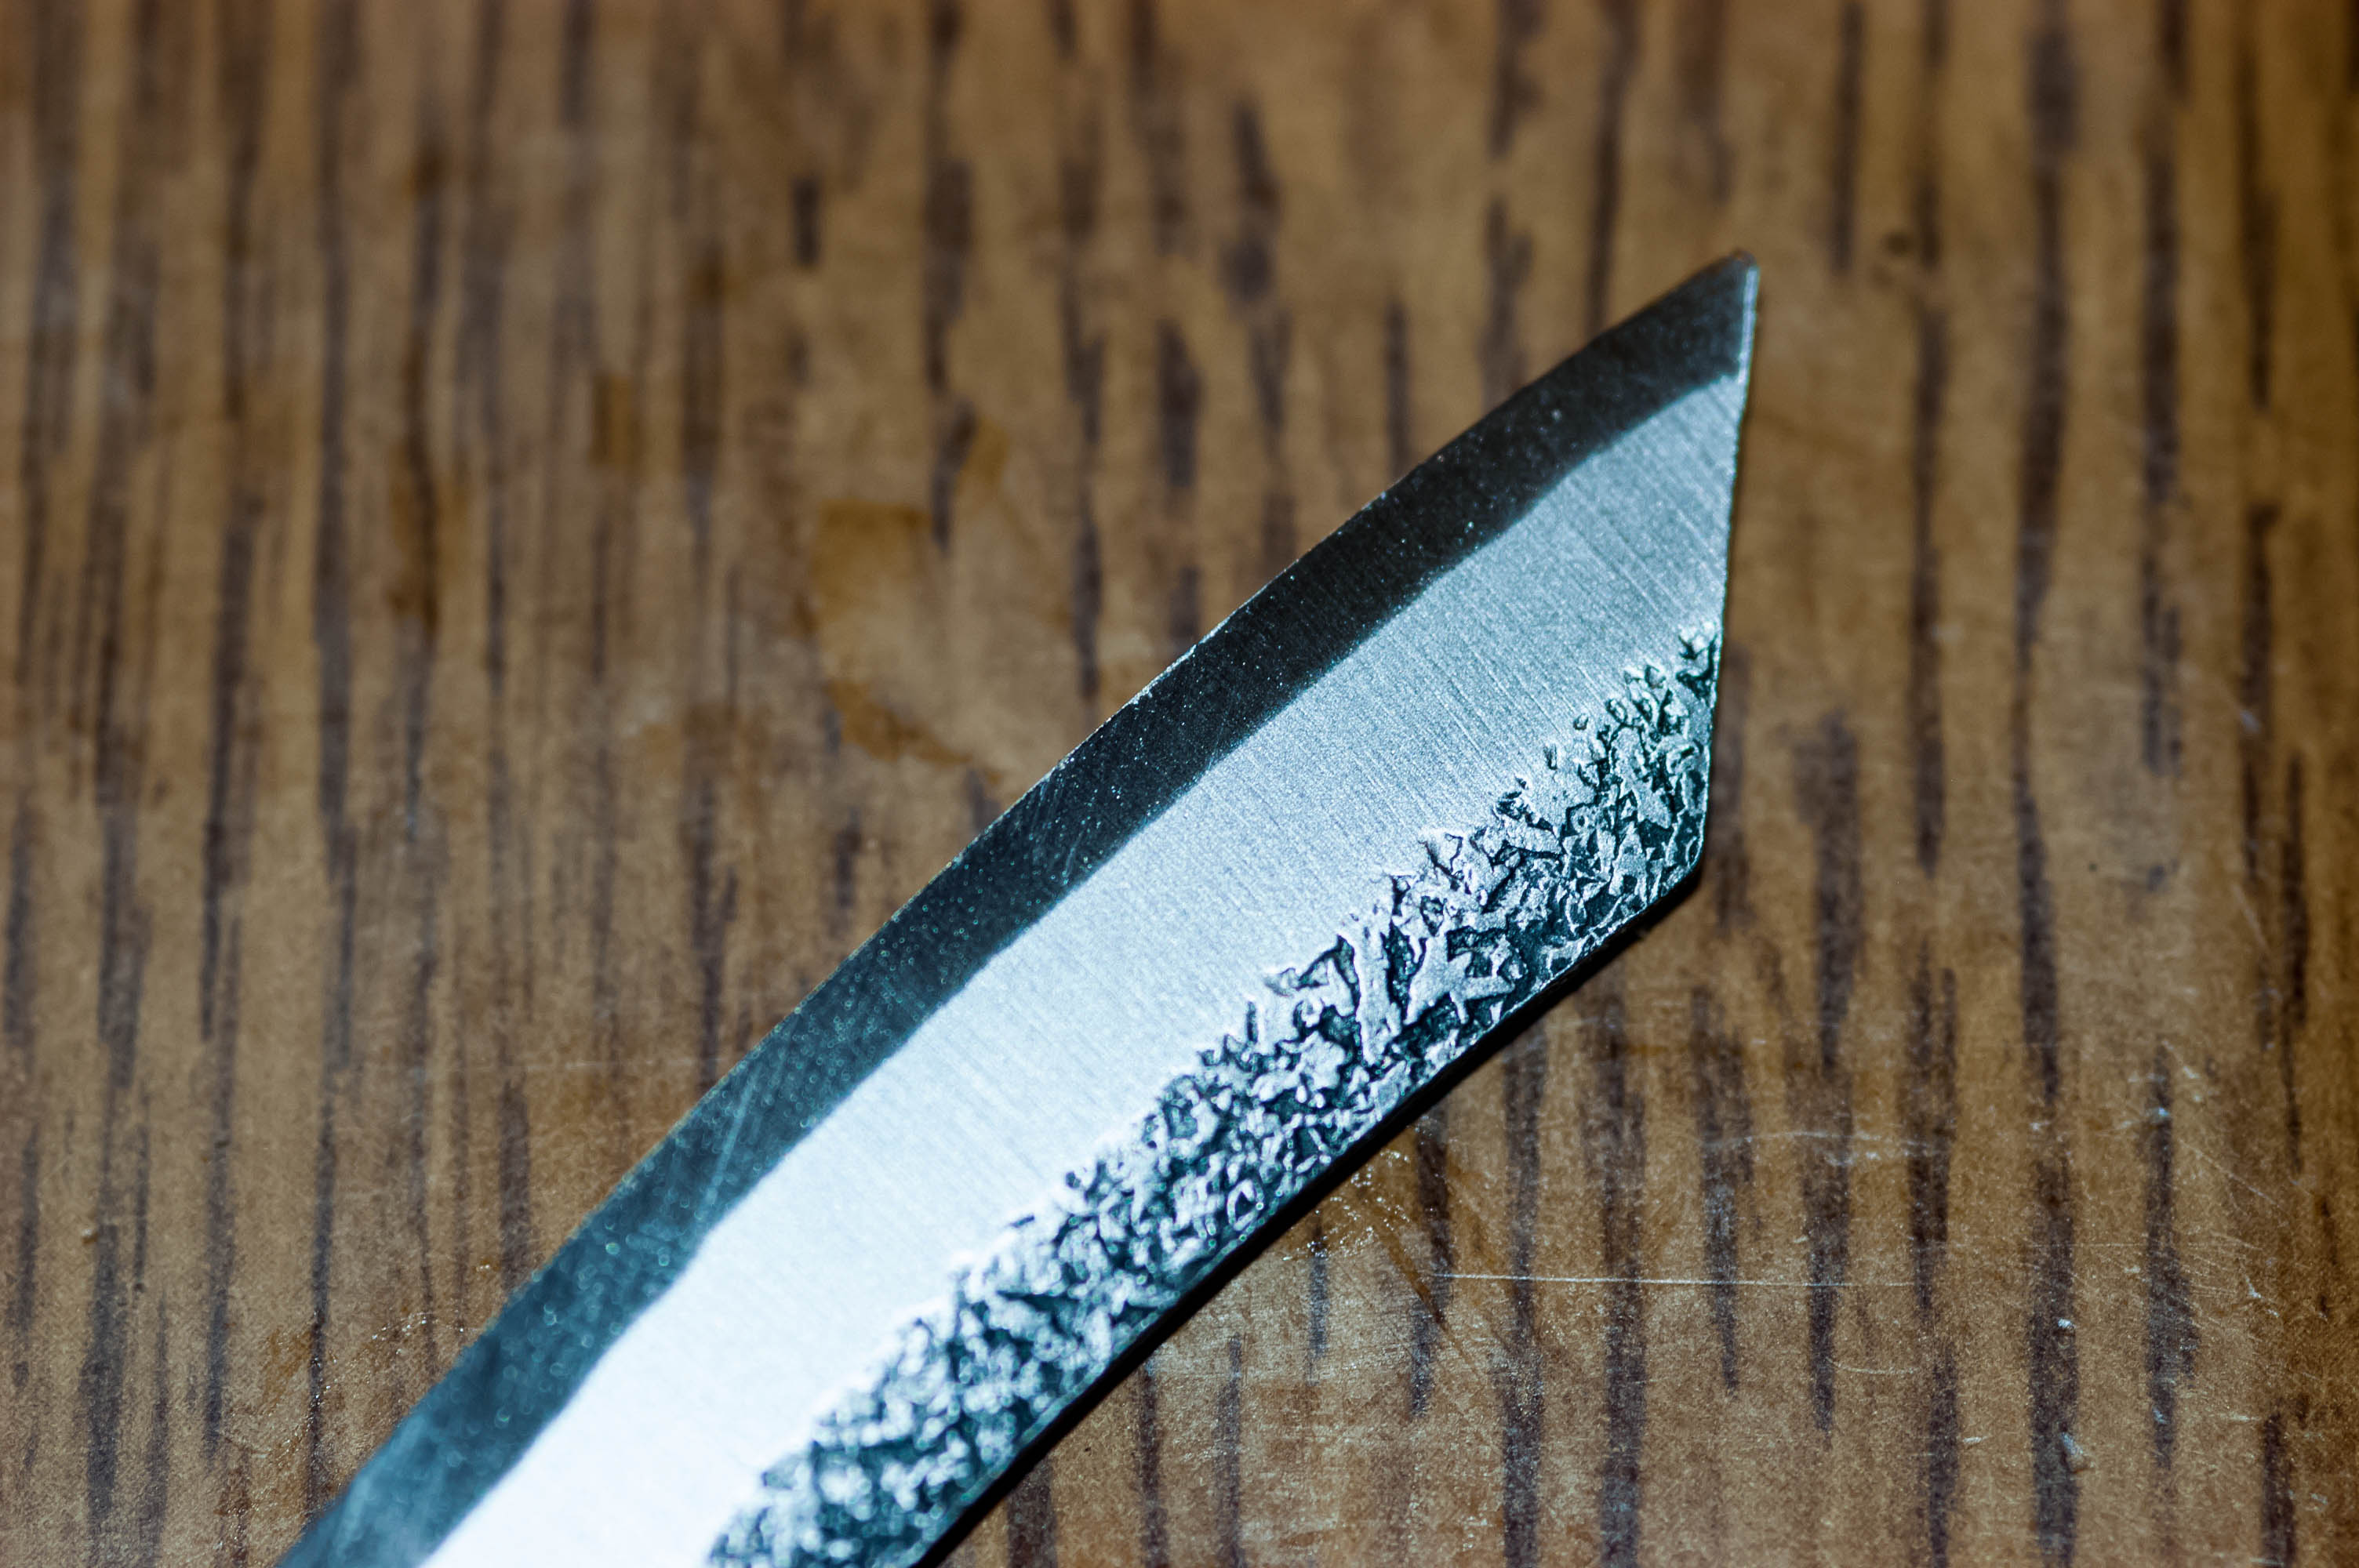 The knife blade itself, showing lamination and rough finish